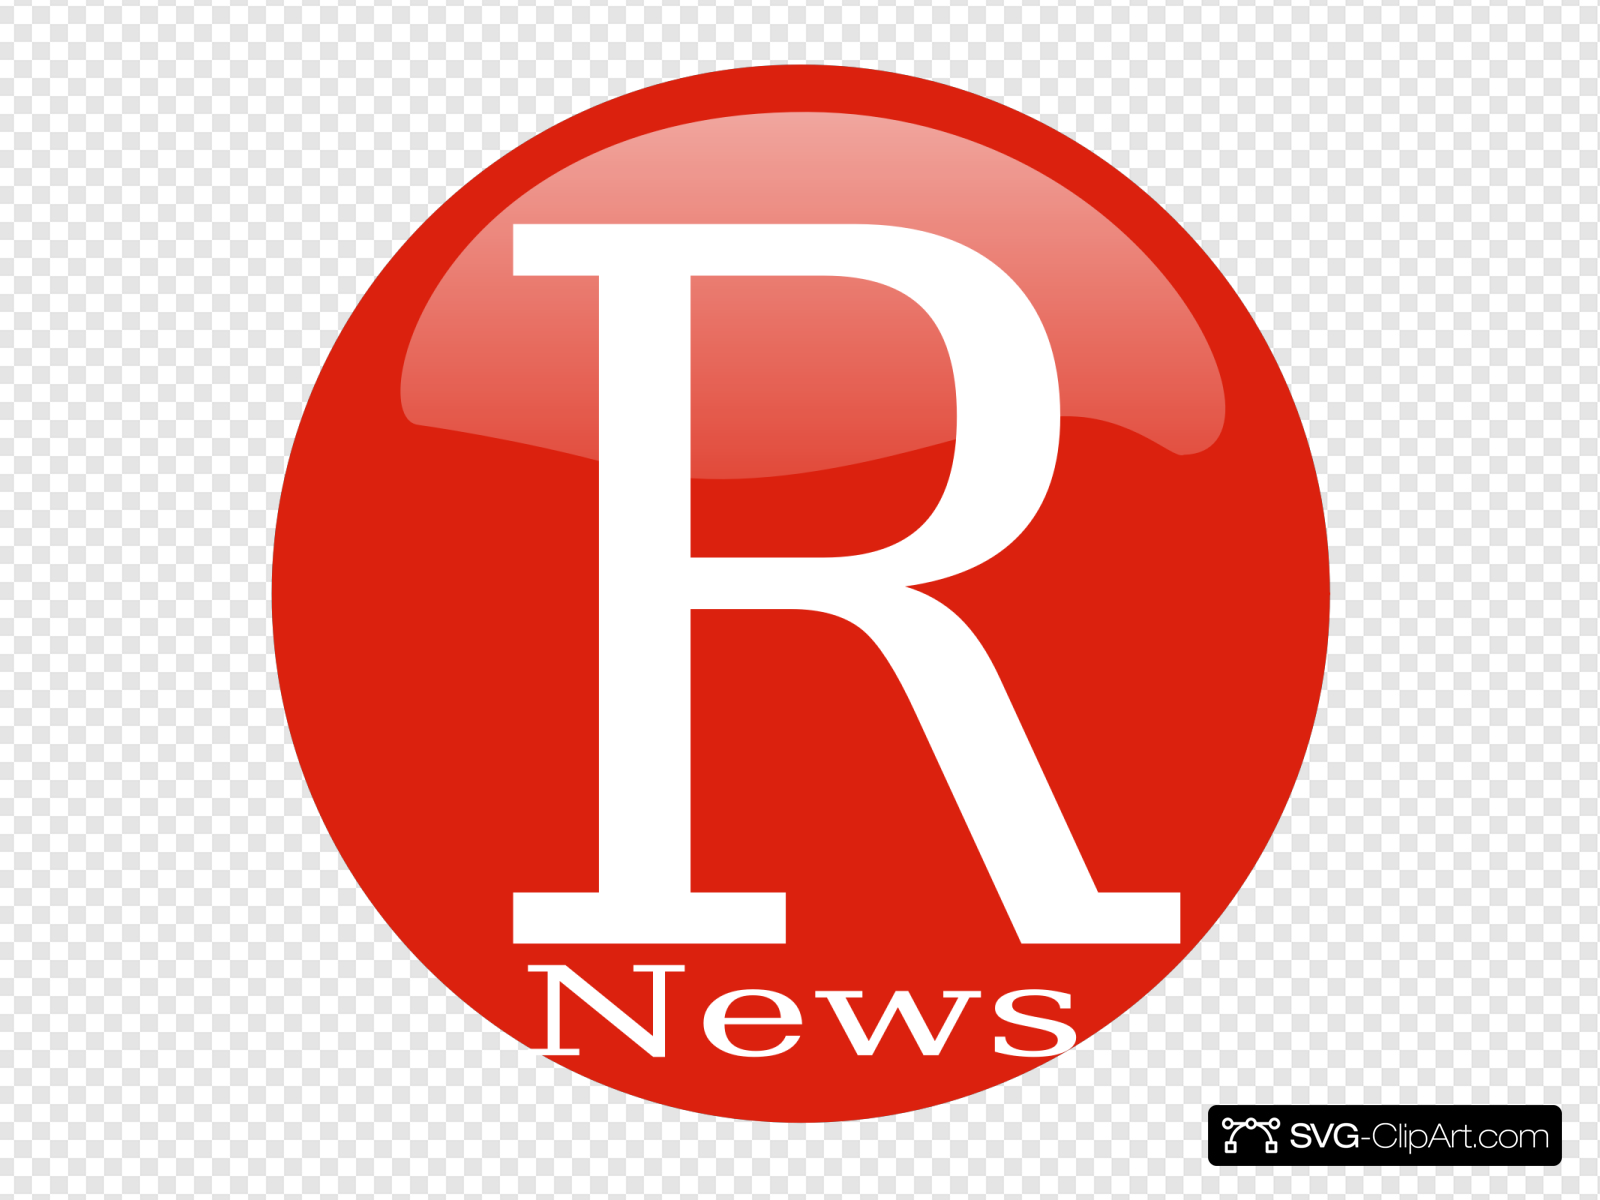 Ripe News Icon Clip art, Icon and SVG.